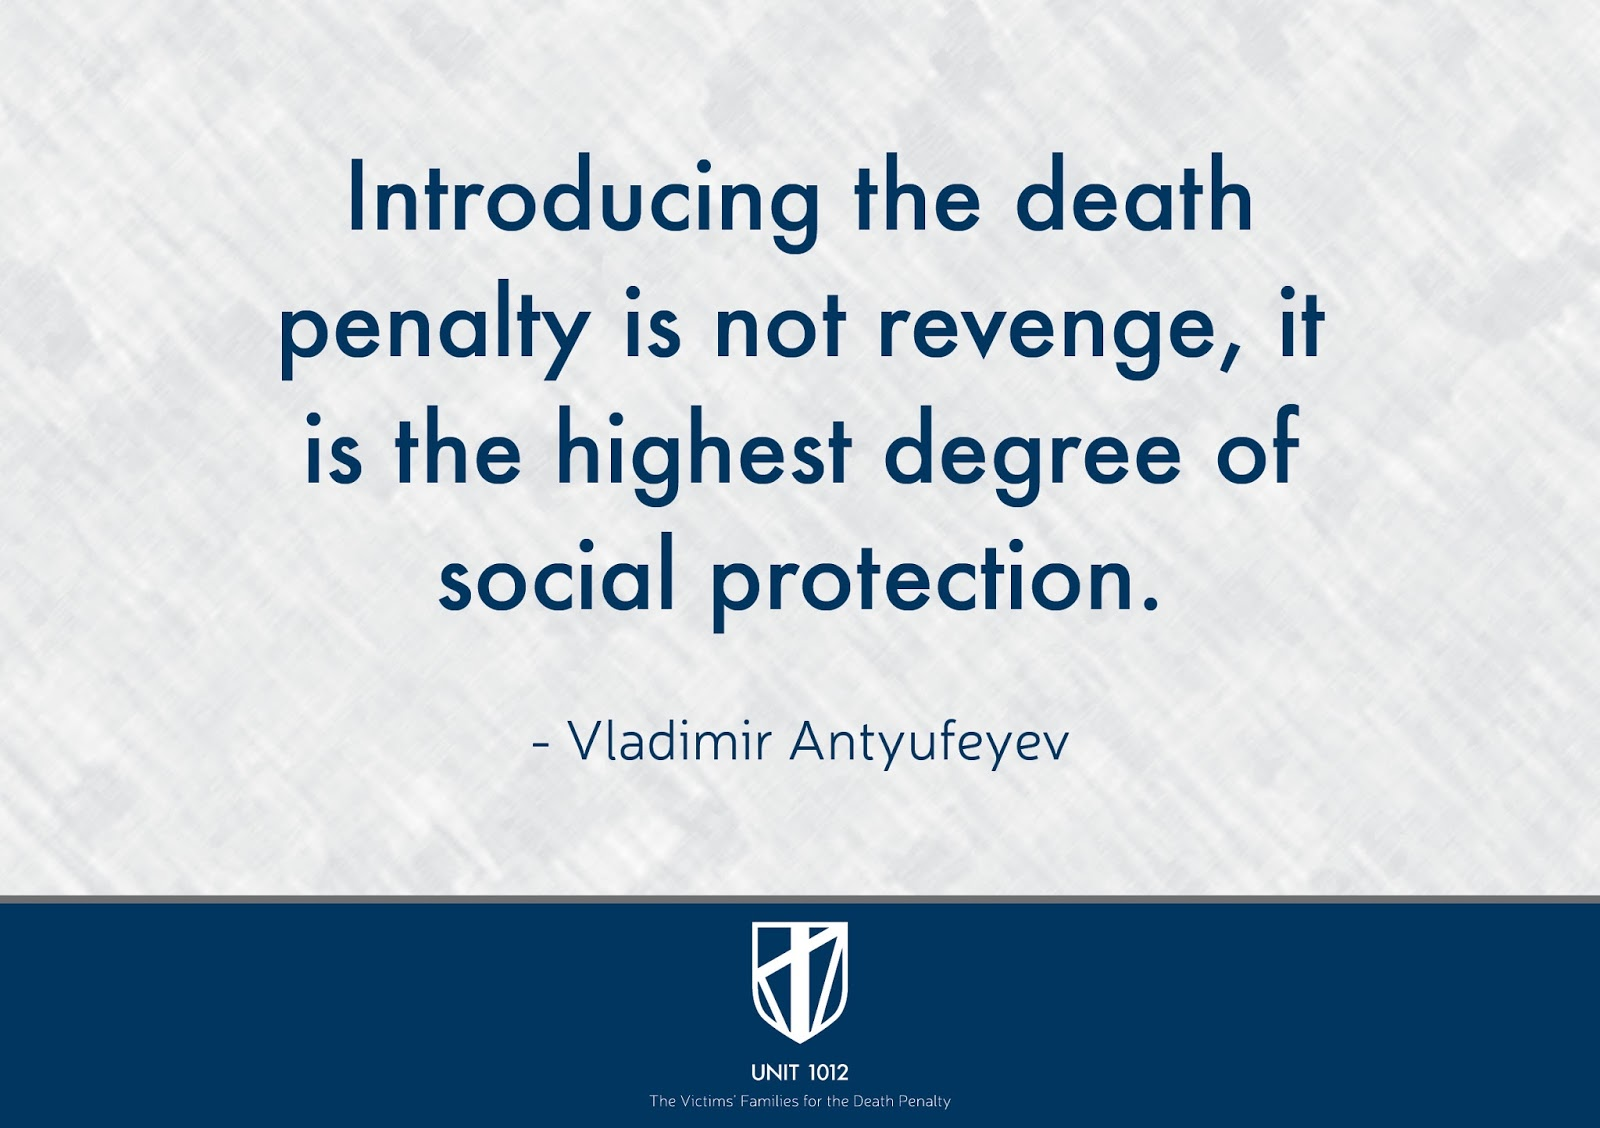 argumentative paper on the death penalty The death penalty, described in this sample argumentative essay, is a highly controversial practice in modern times while many countries have outlawed it, some (like the united states) practice capital punishment on the state level.